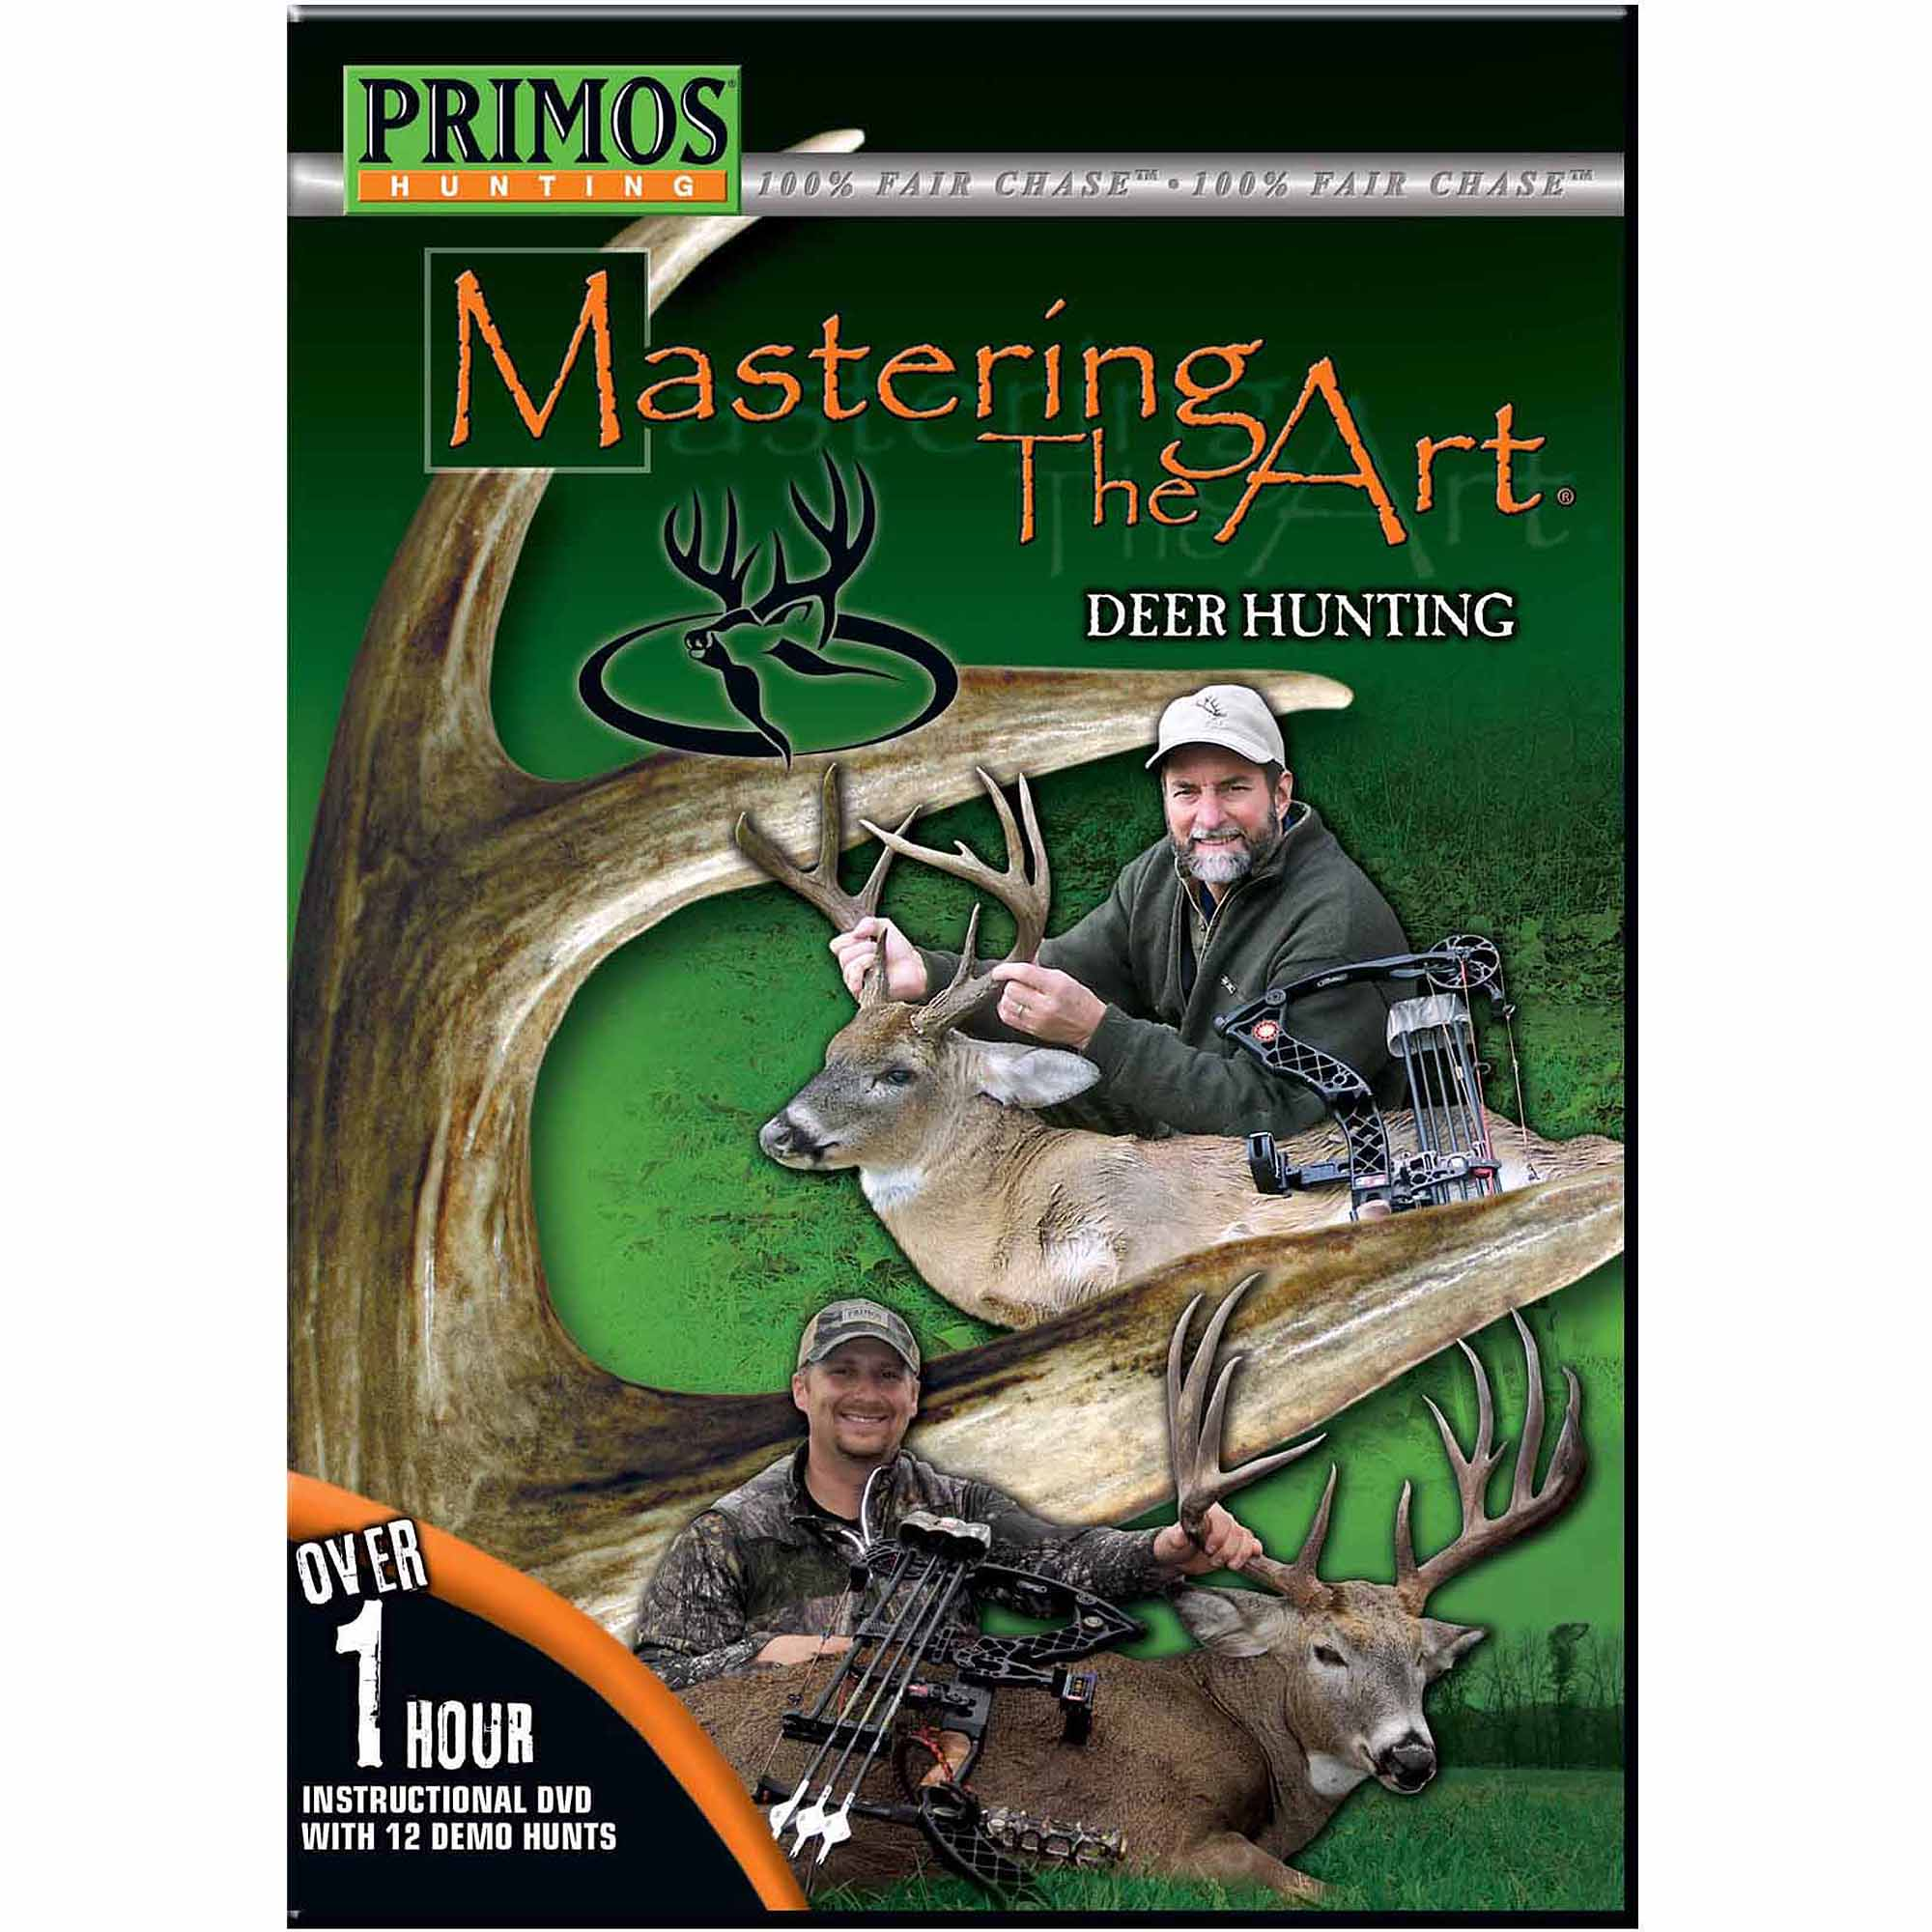 Primos Mastering the Art DVD, Deer by Primos